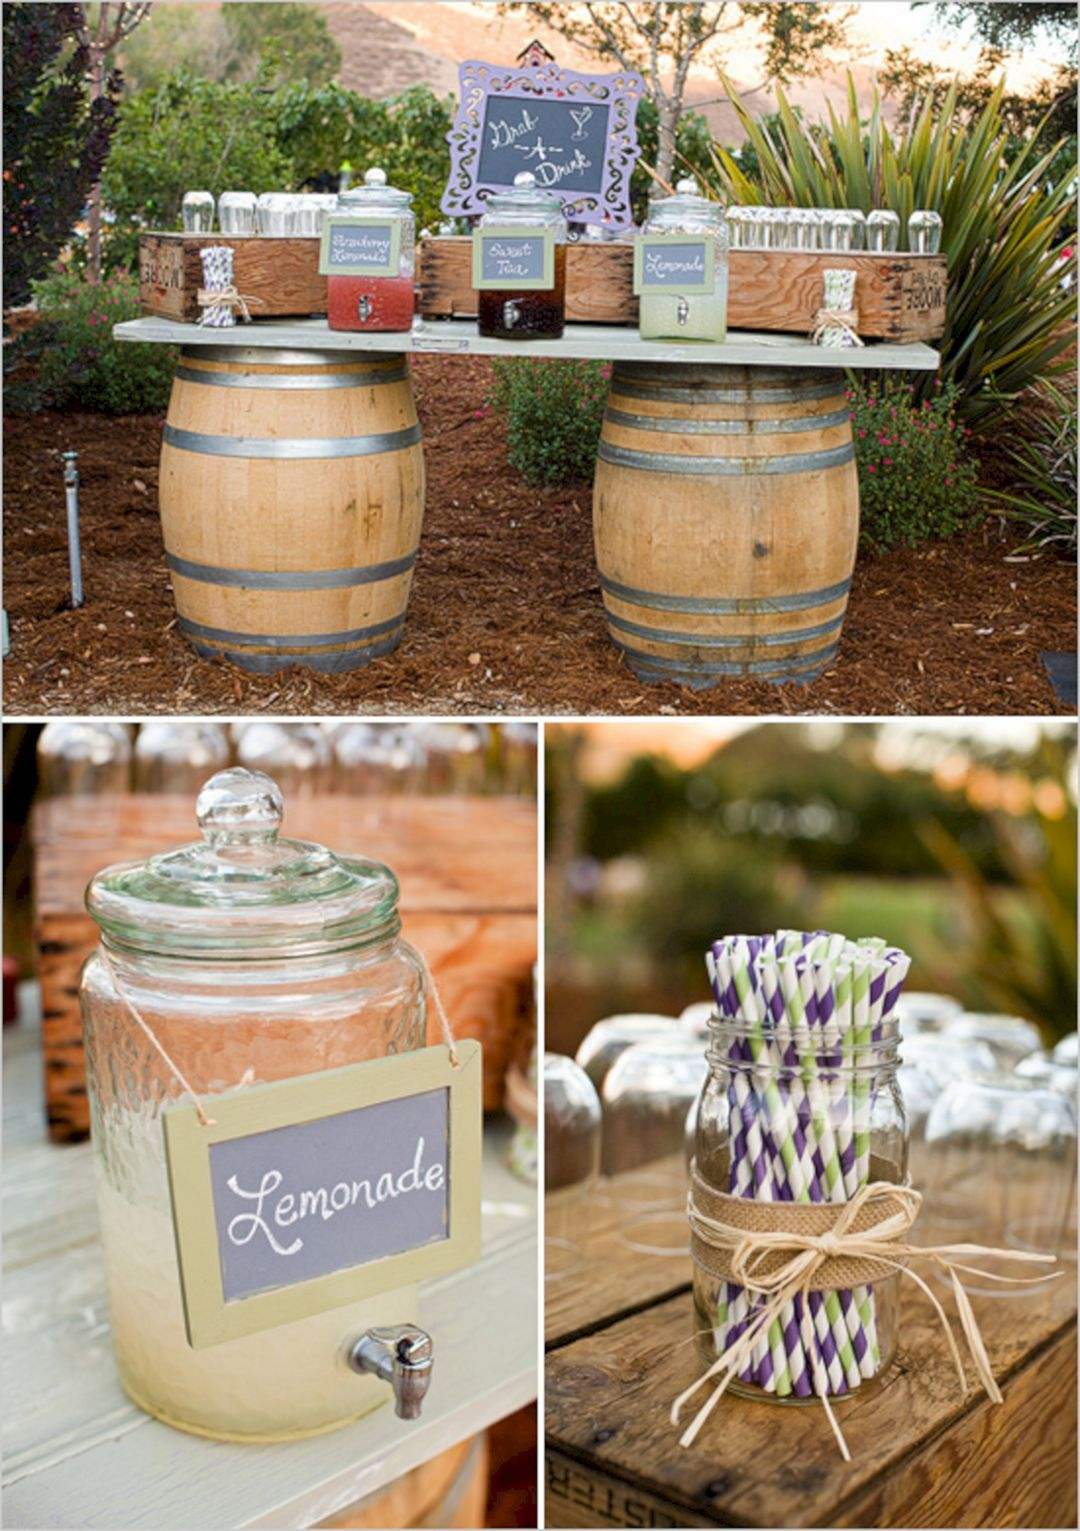 Best diy rustic wedding decorations ideas for your wedding decor